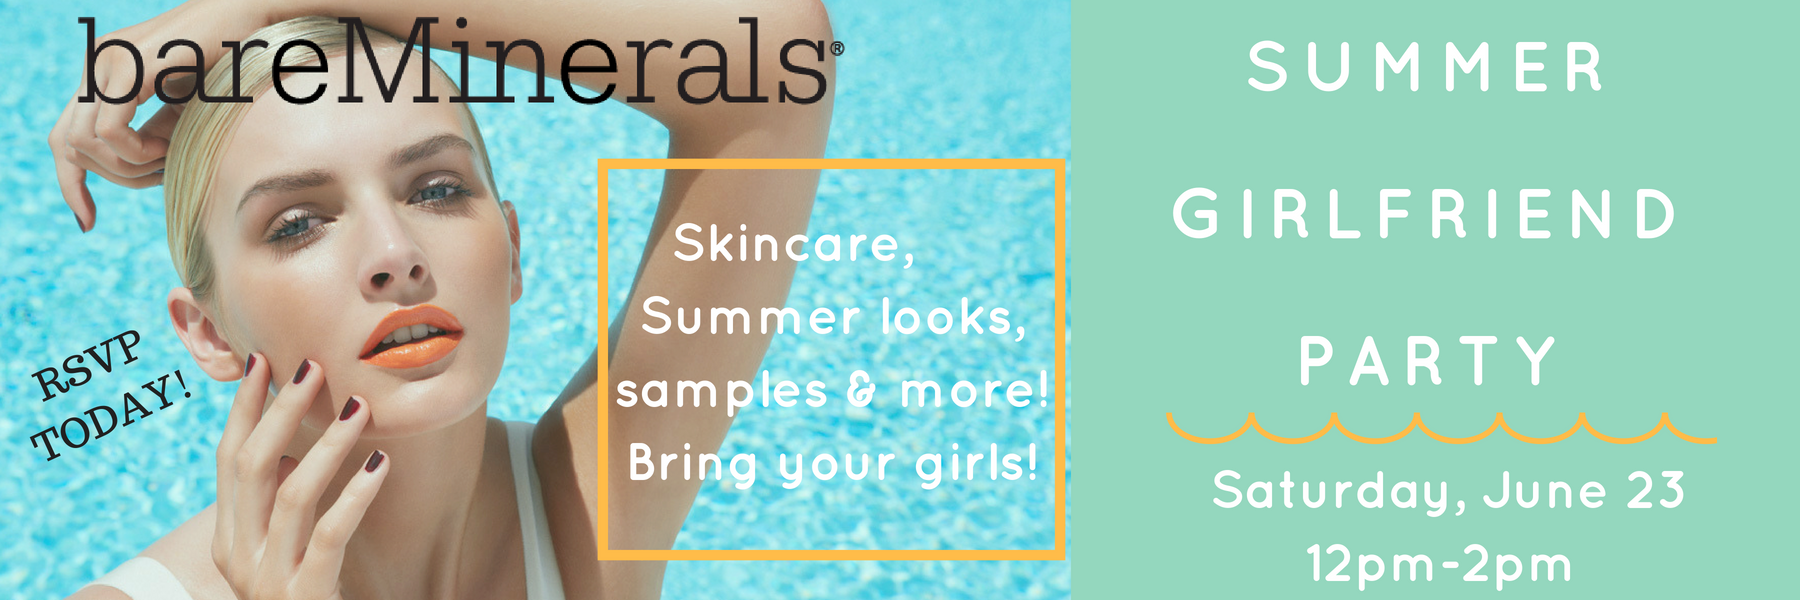 Bare Minerals Summer GF Party